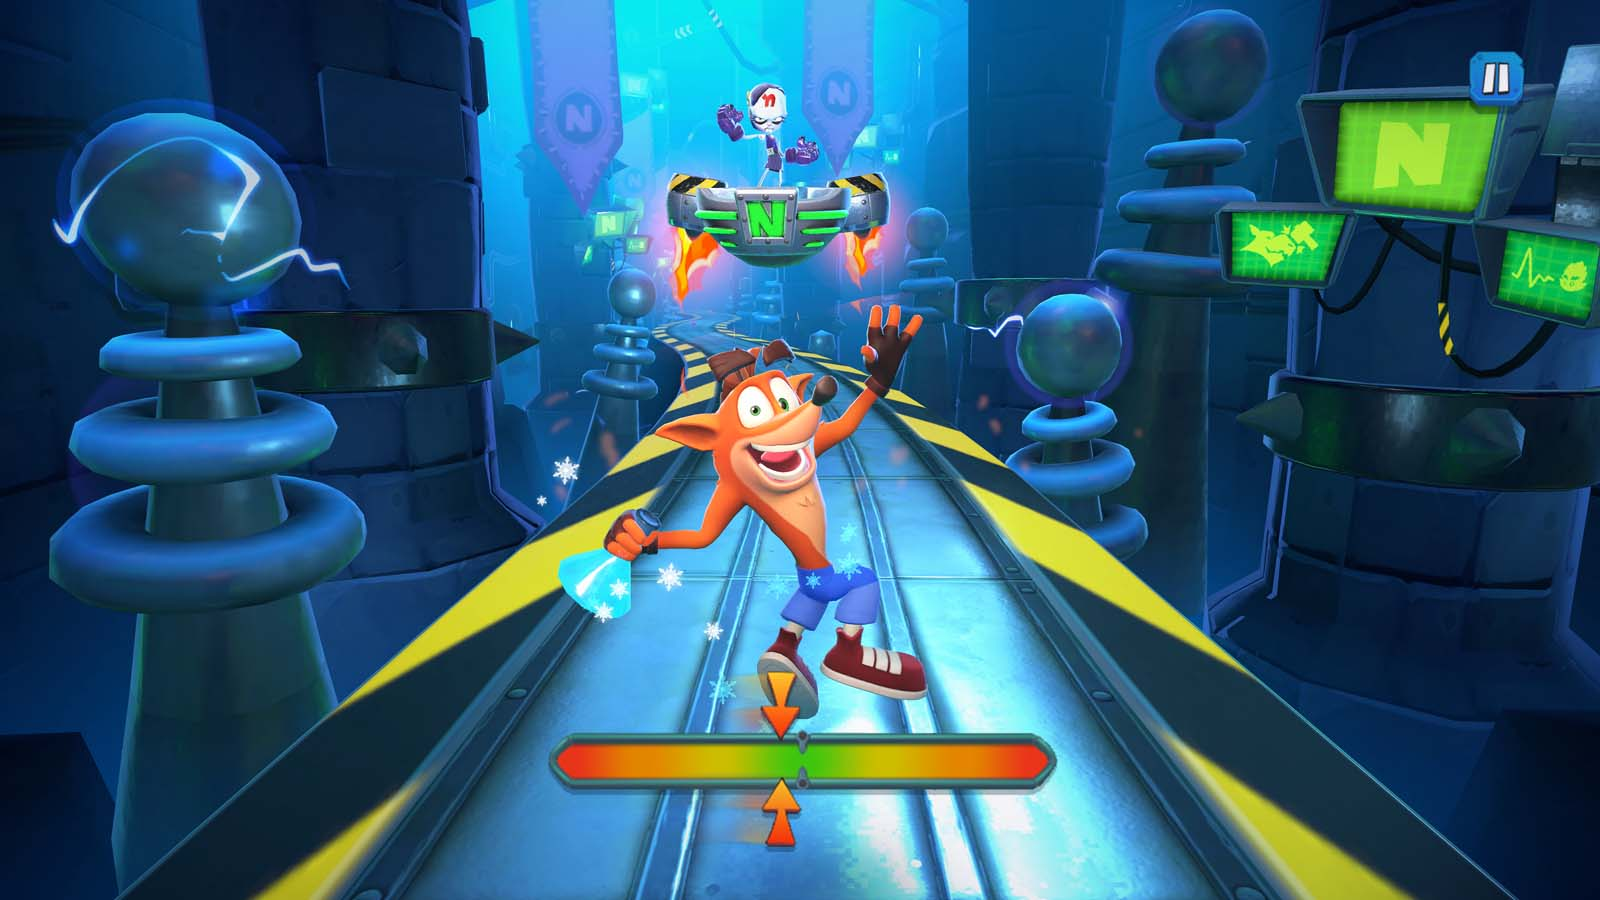 In Crash Bandicoot: On the Run!™ , Dr. Neo Cortex has dispatched iconic villains across the multiverse to take control of all dimensions. With the help of his sister Coco, Crash must bash Cortex's minions back to their own dimensions!